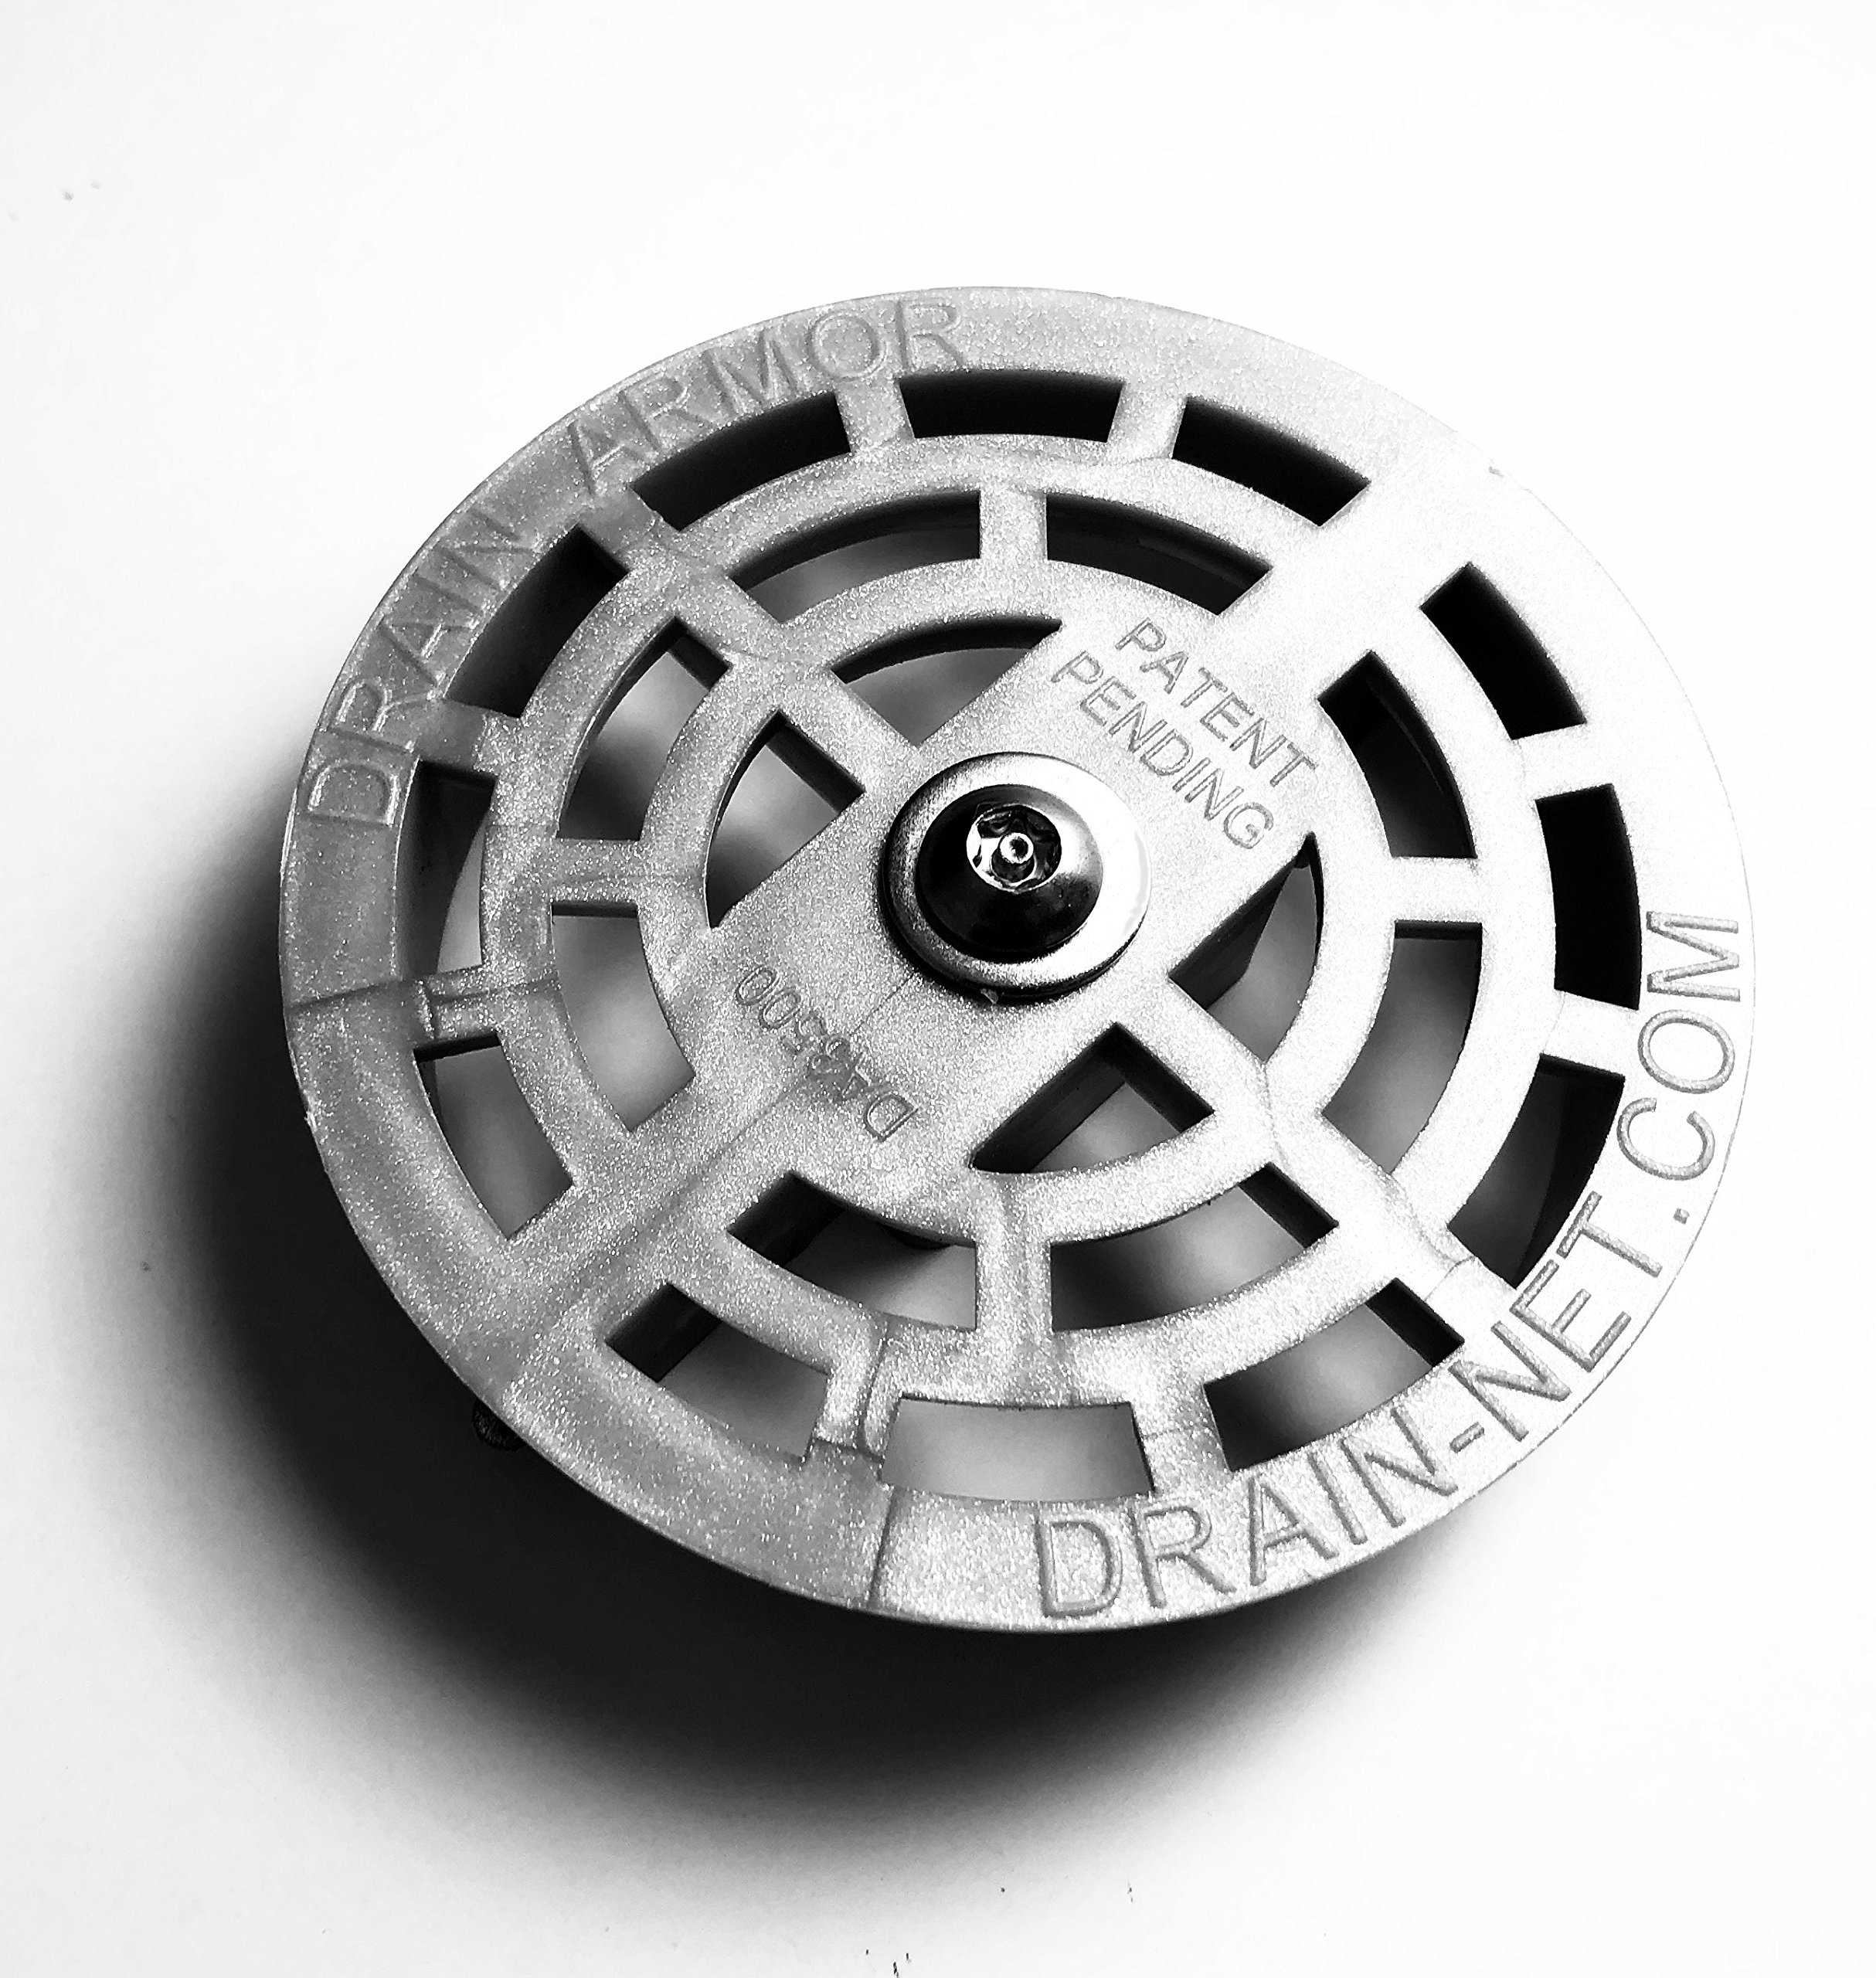 Drain Armor 3.5'' Locking Strainer for Compartment Sinks